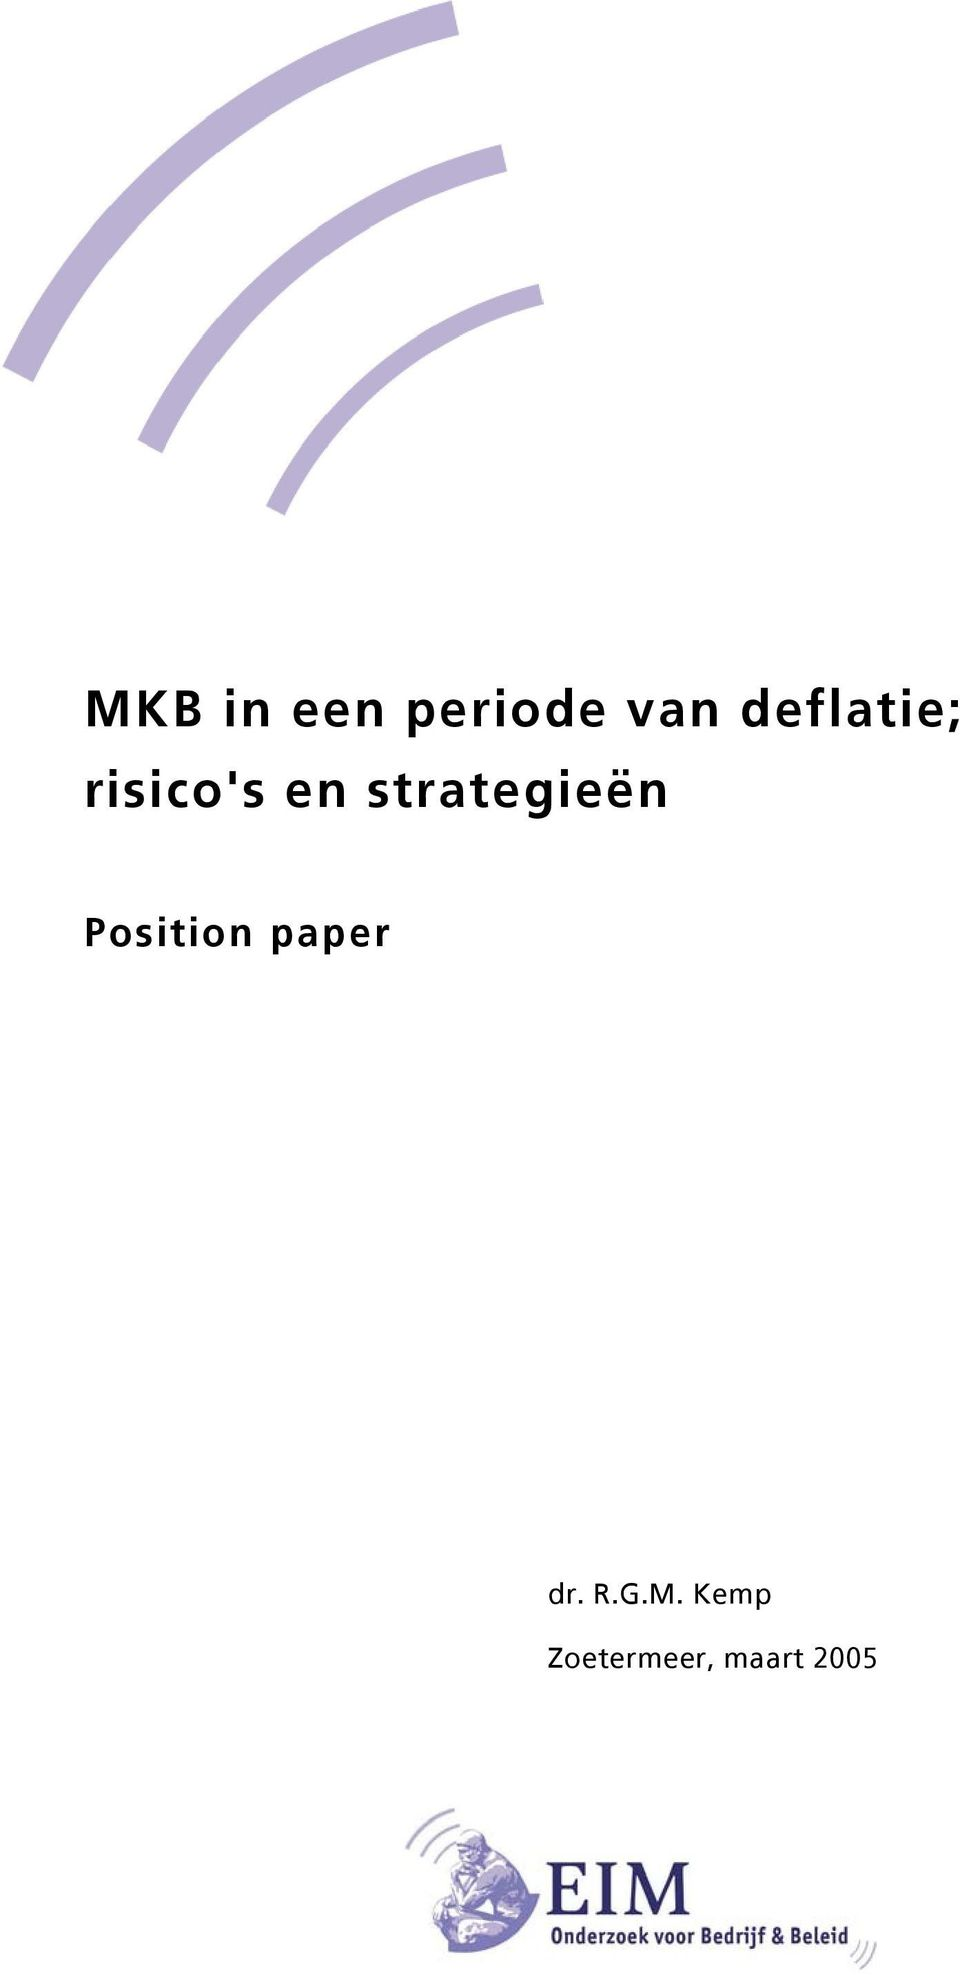 strategieën Position paper